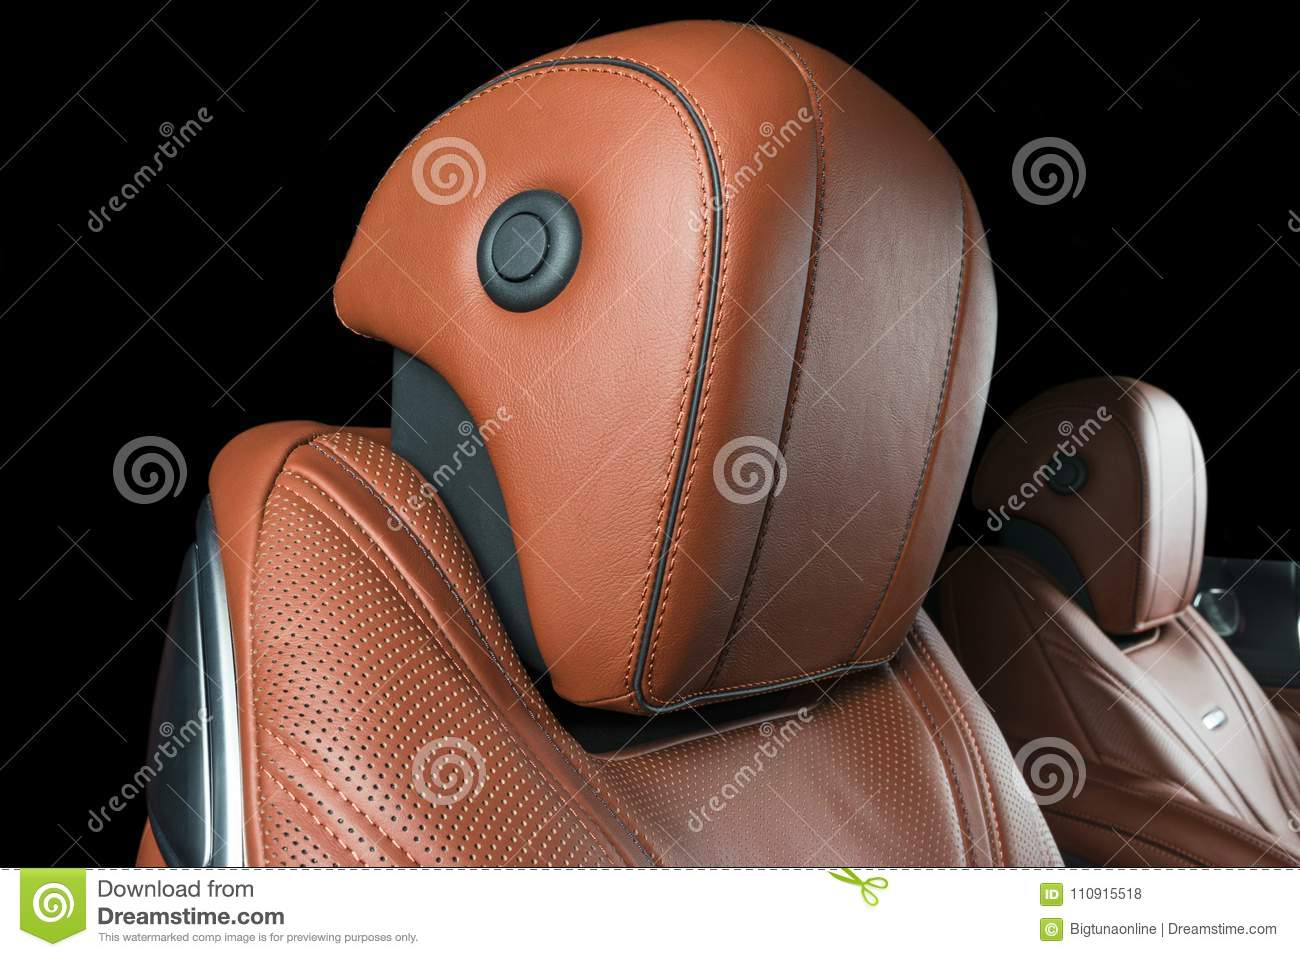 Modern Luxury Car Inside Interior Of Prestige Modern Car Comfortable Leather Seats Brown Perforated Leather Cockpit Stock Photo Image Of Colorful Interior 110915518